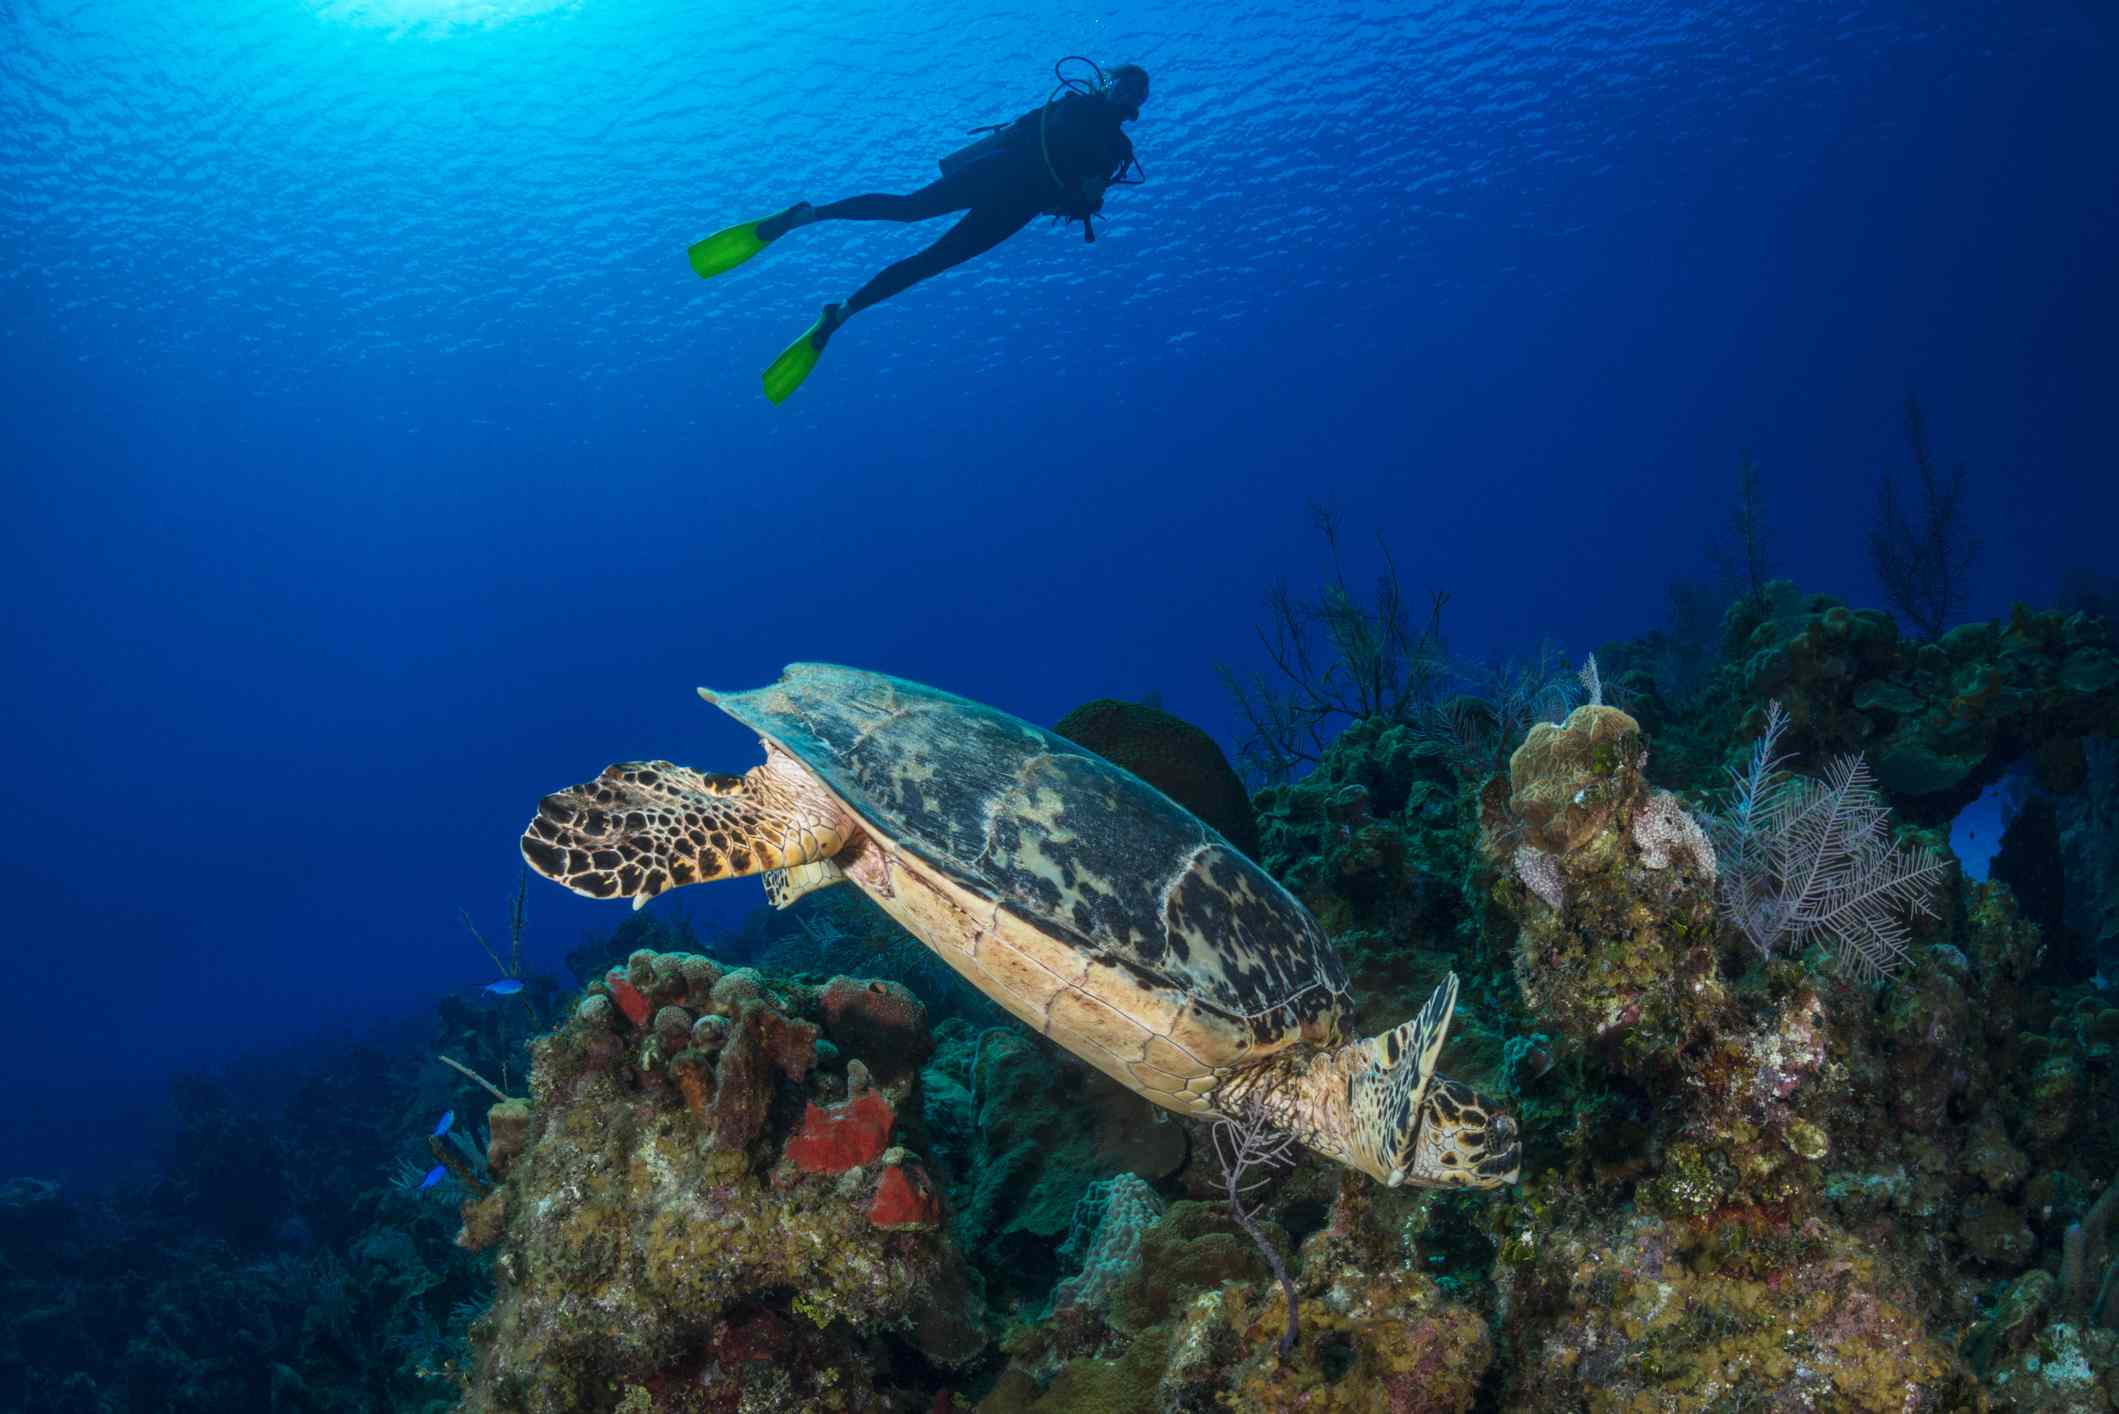 Scuba diver floating above a reef and a Hawksbill turtle in the Cayman Islands